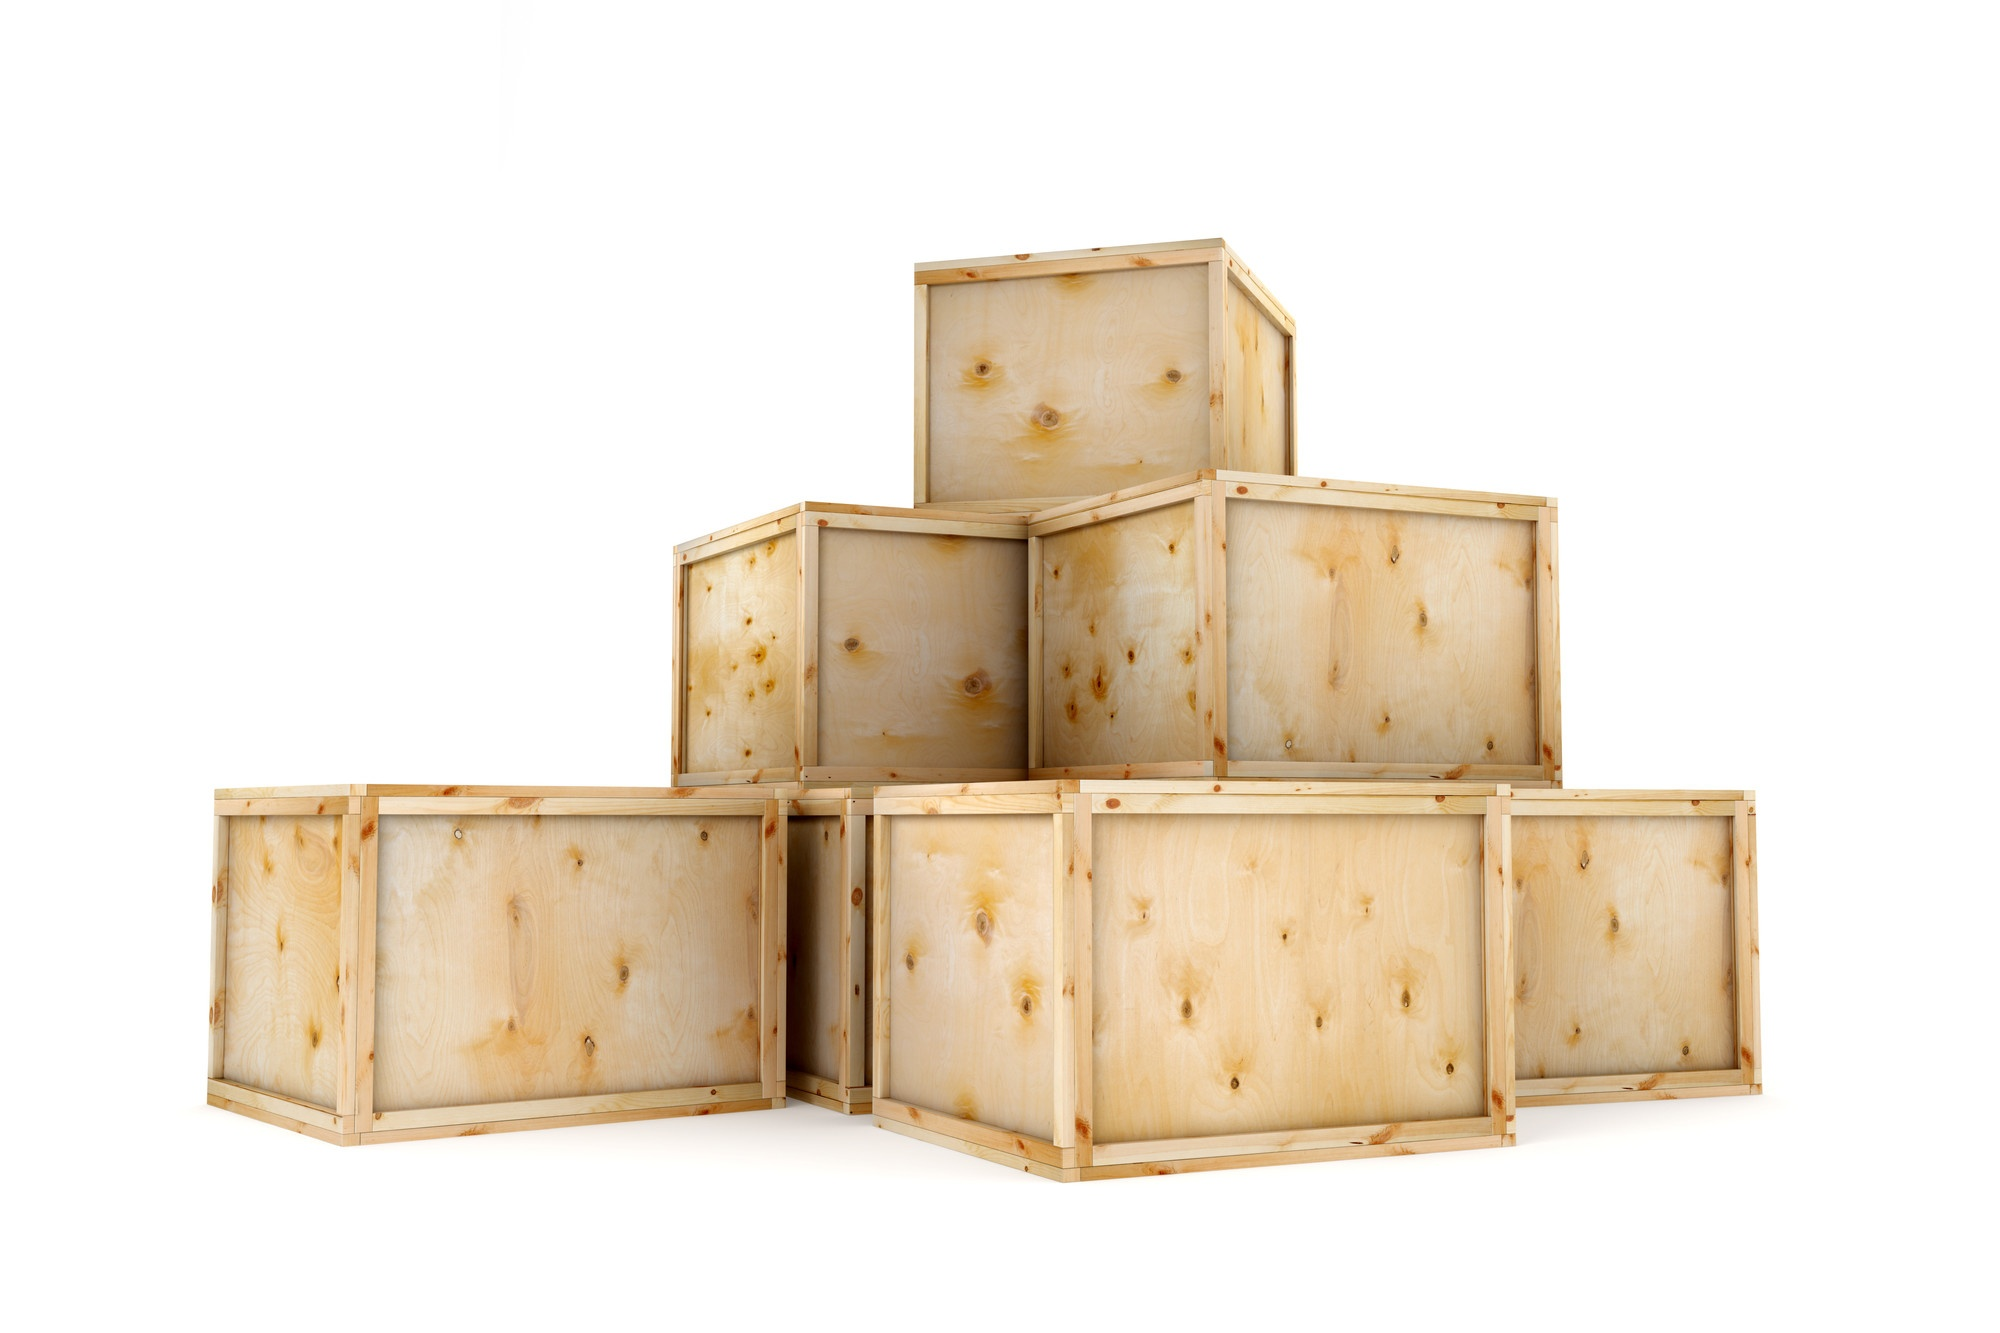 Wood crates packaging service